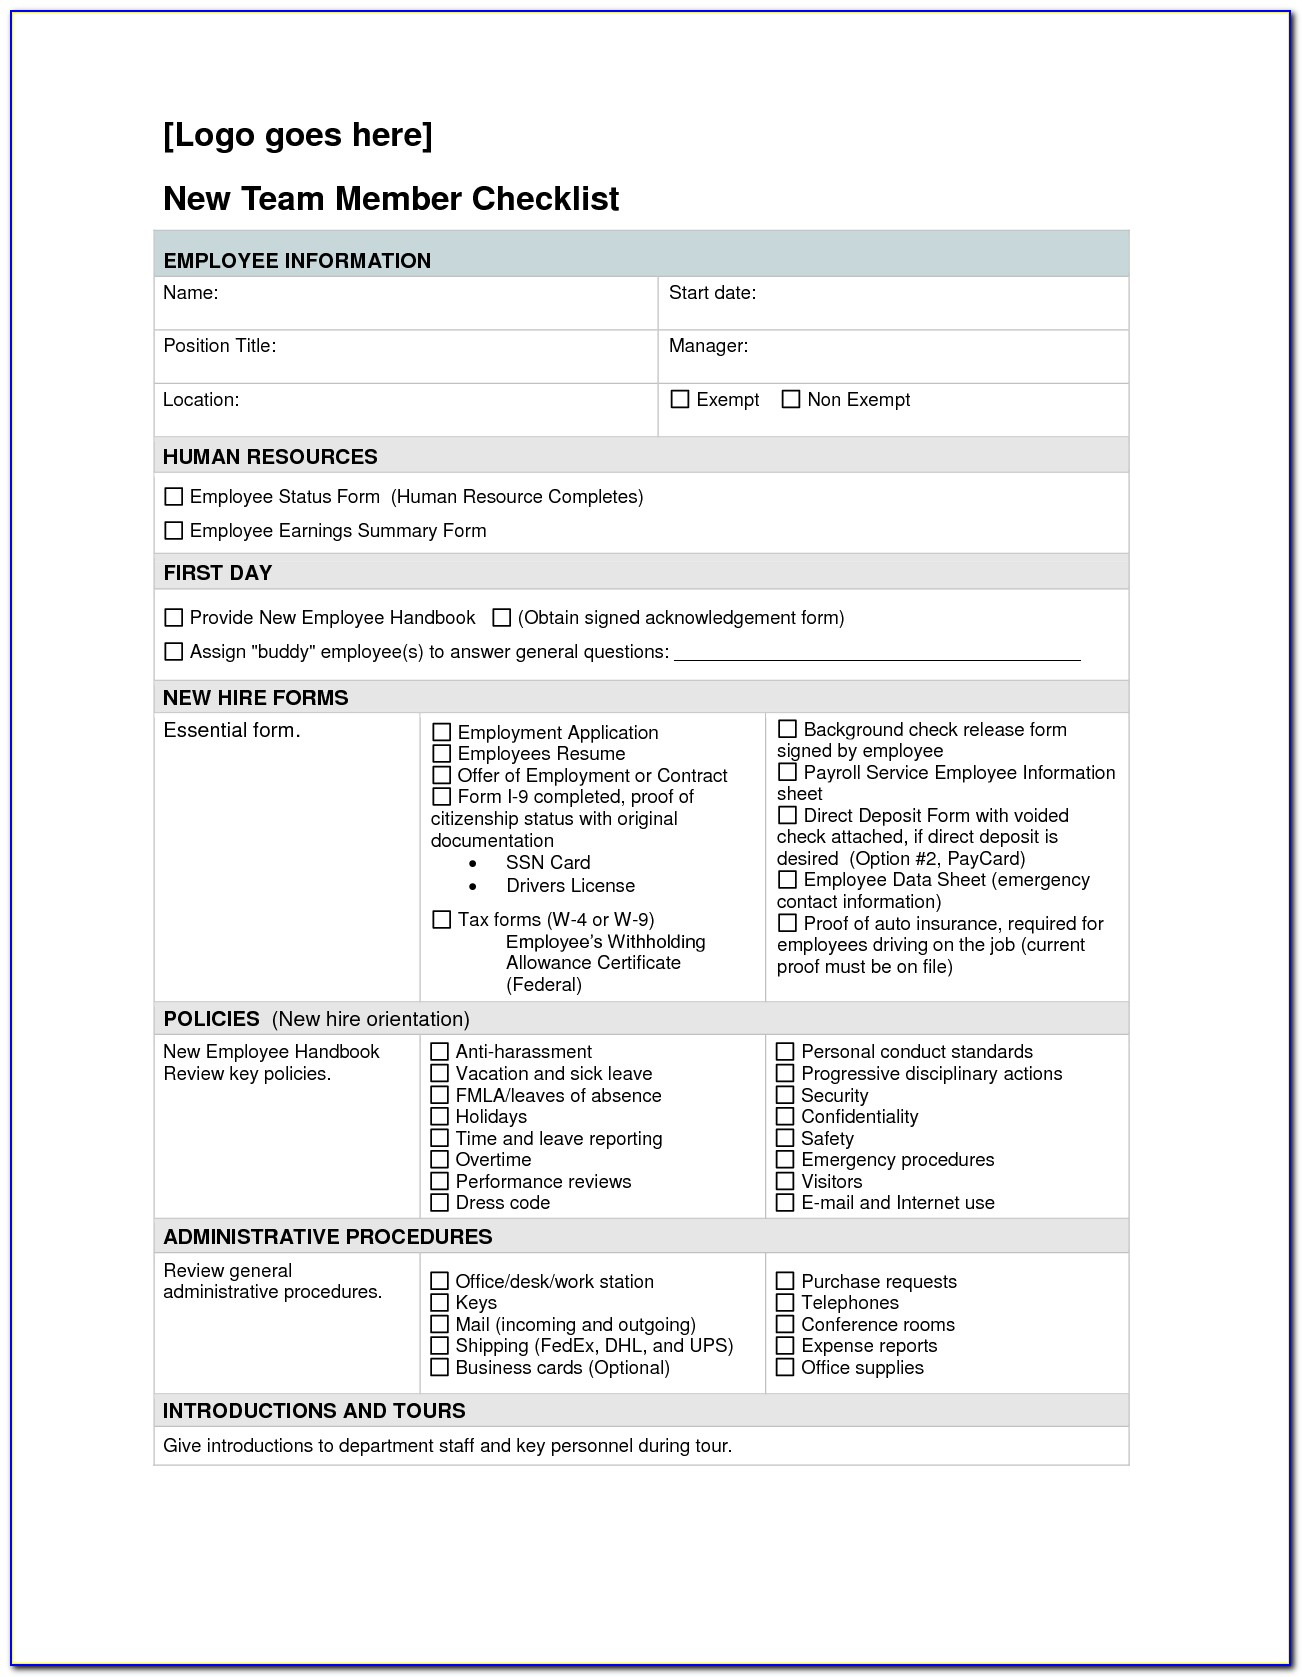 New Employee Orientation Checklist Sample